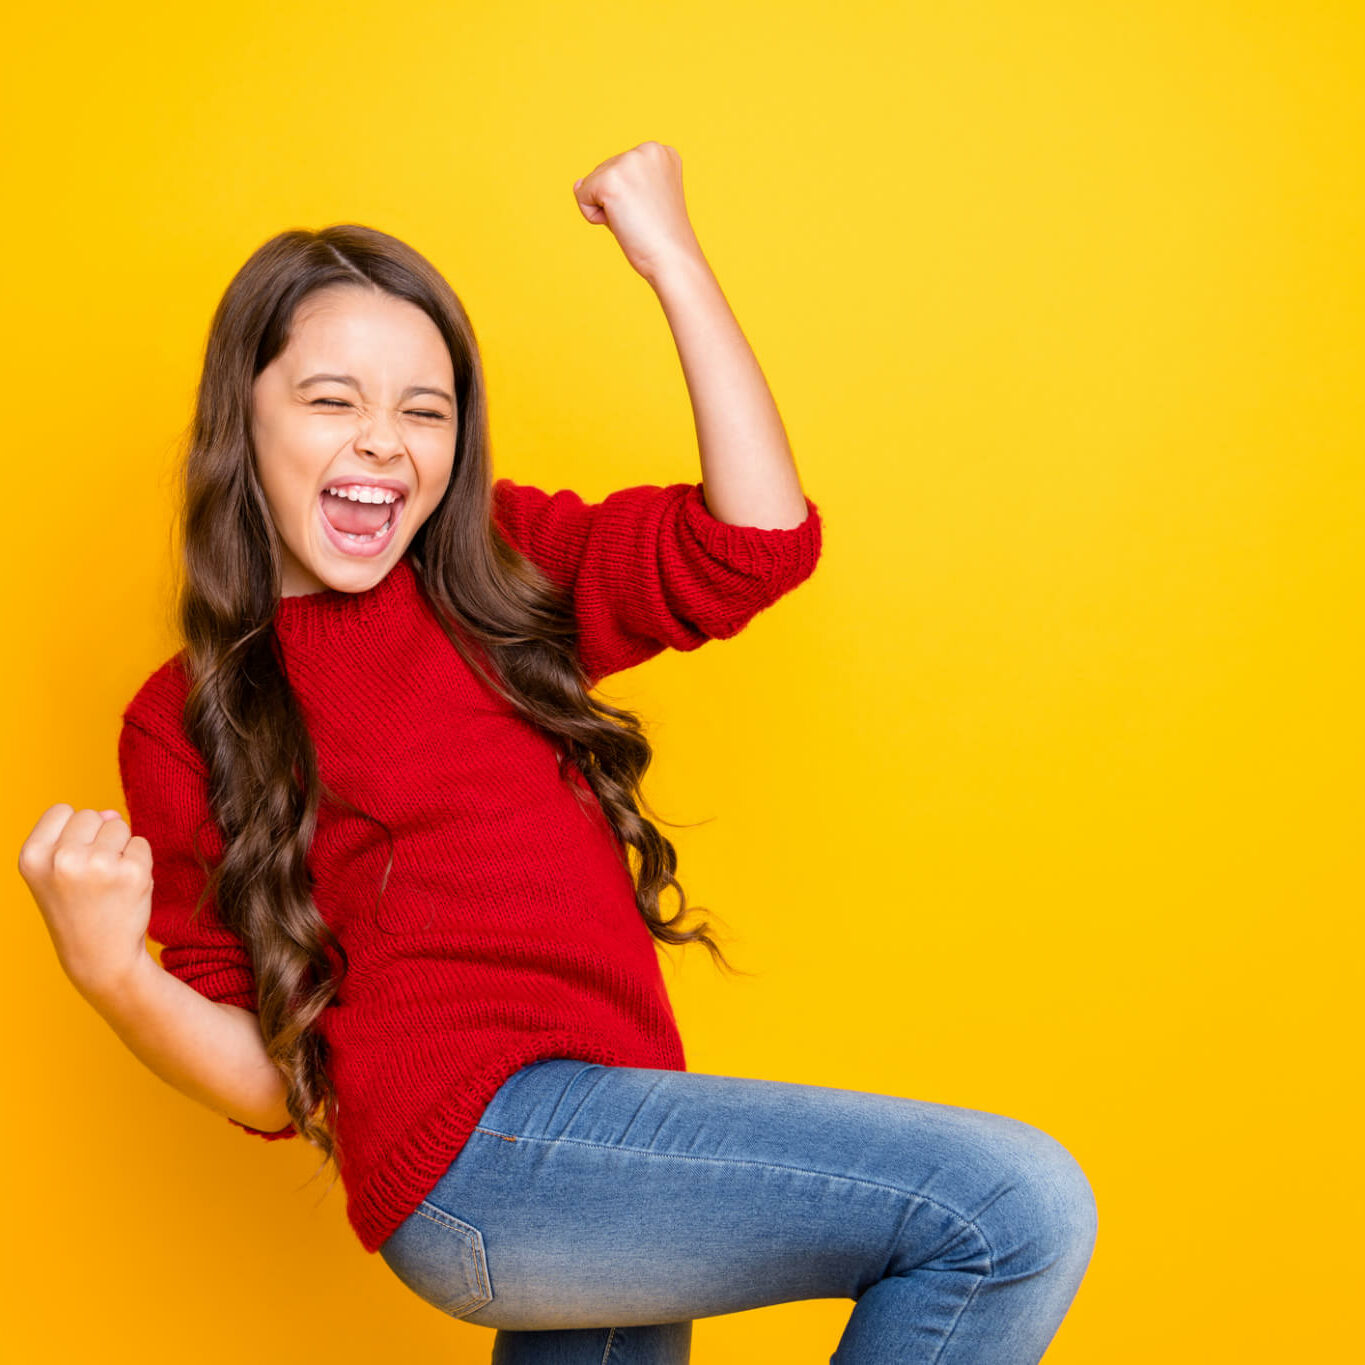 Portrait of delighted positive lucky cheerful kid feel crazy funky rejoice raise, fists scream yeah celebrate achievements aims wear style sweater denim jeans isolated over yellow color background